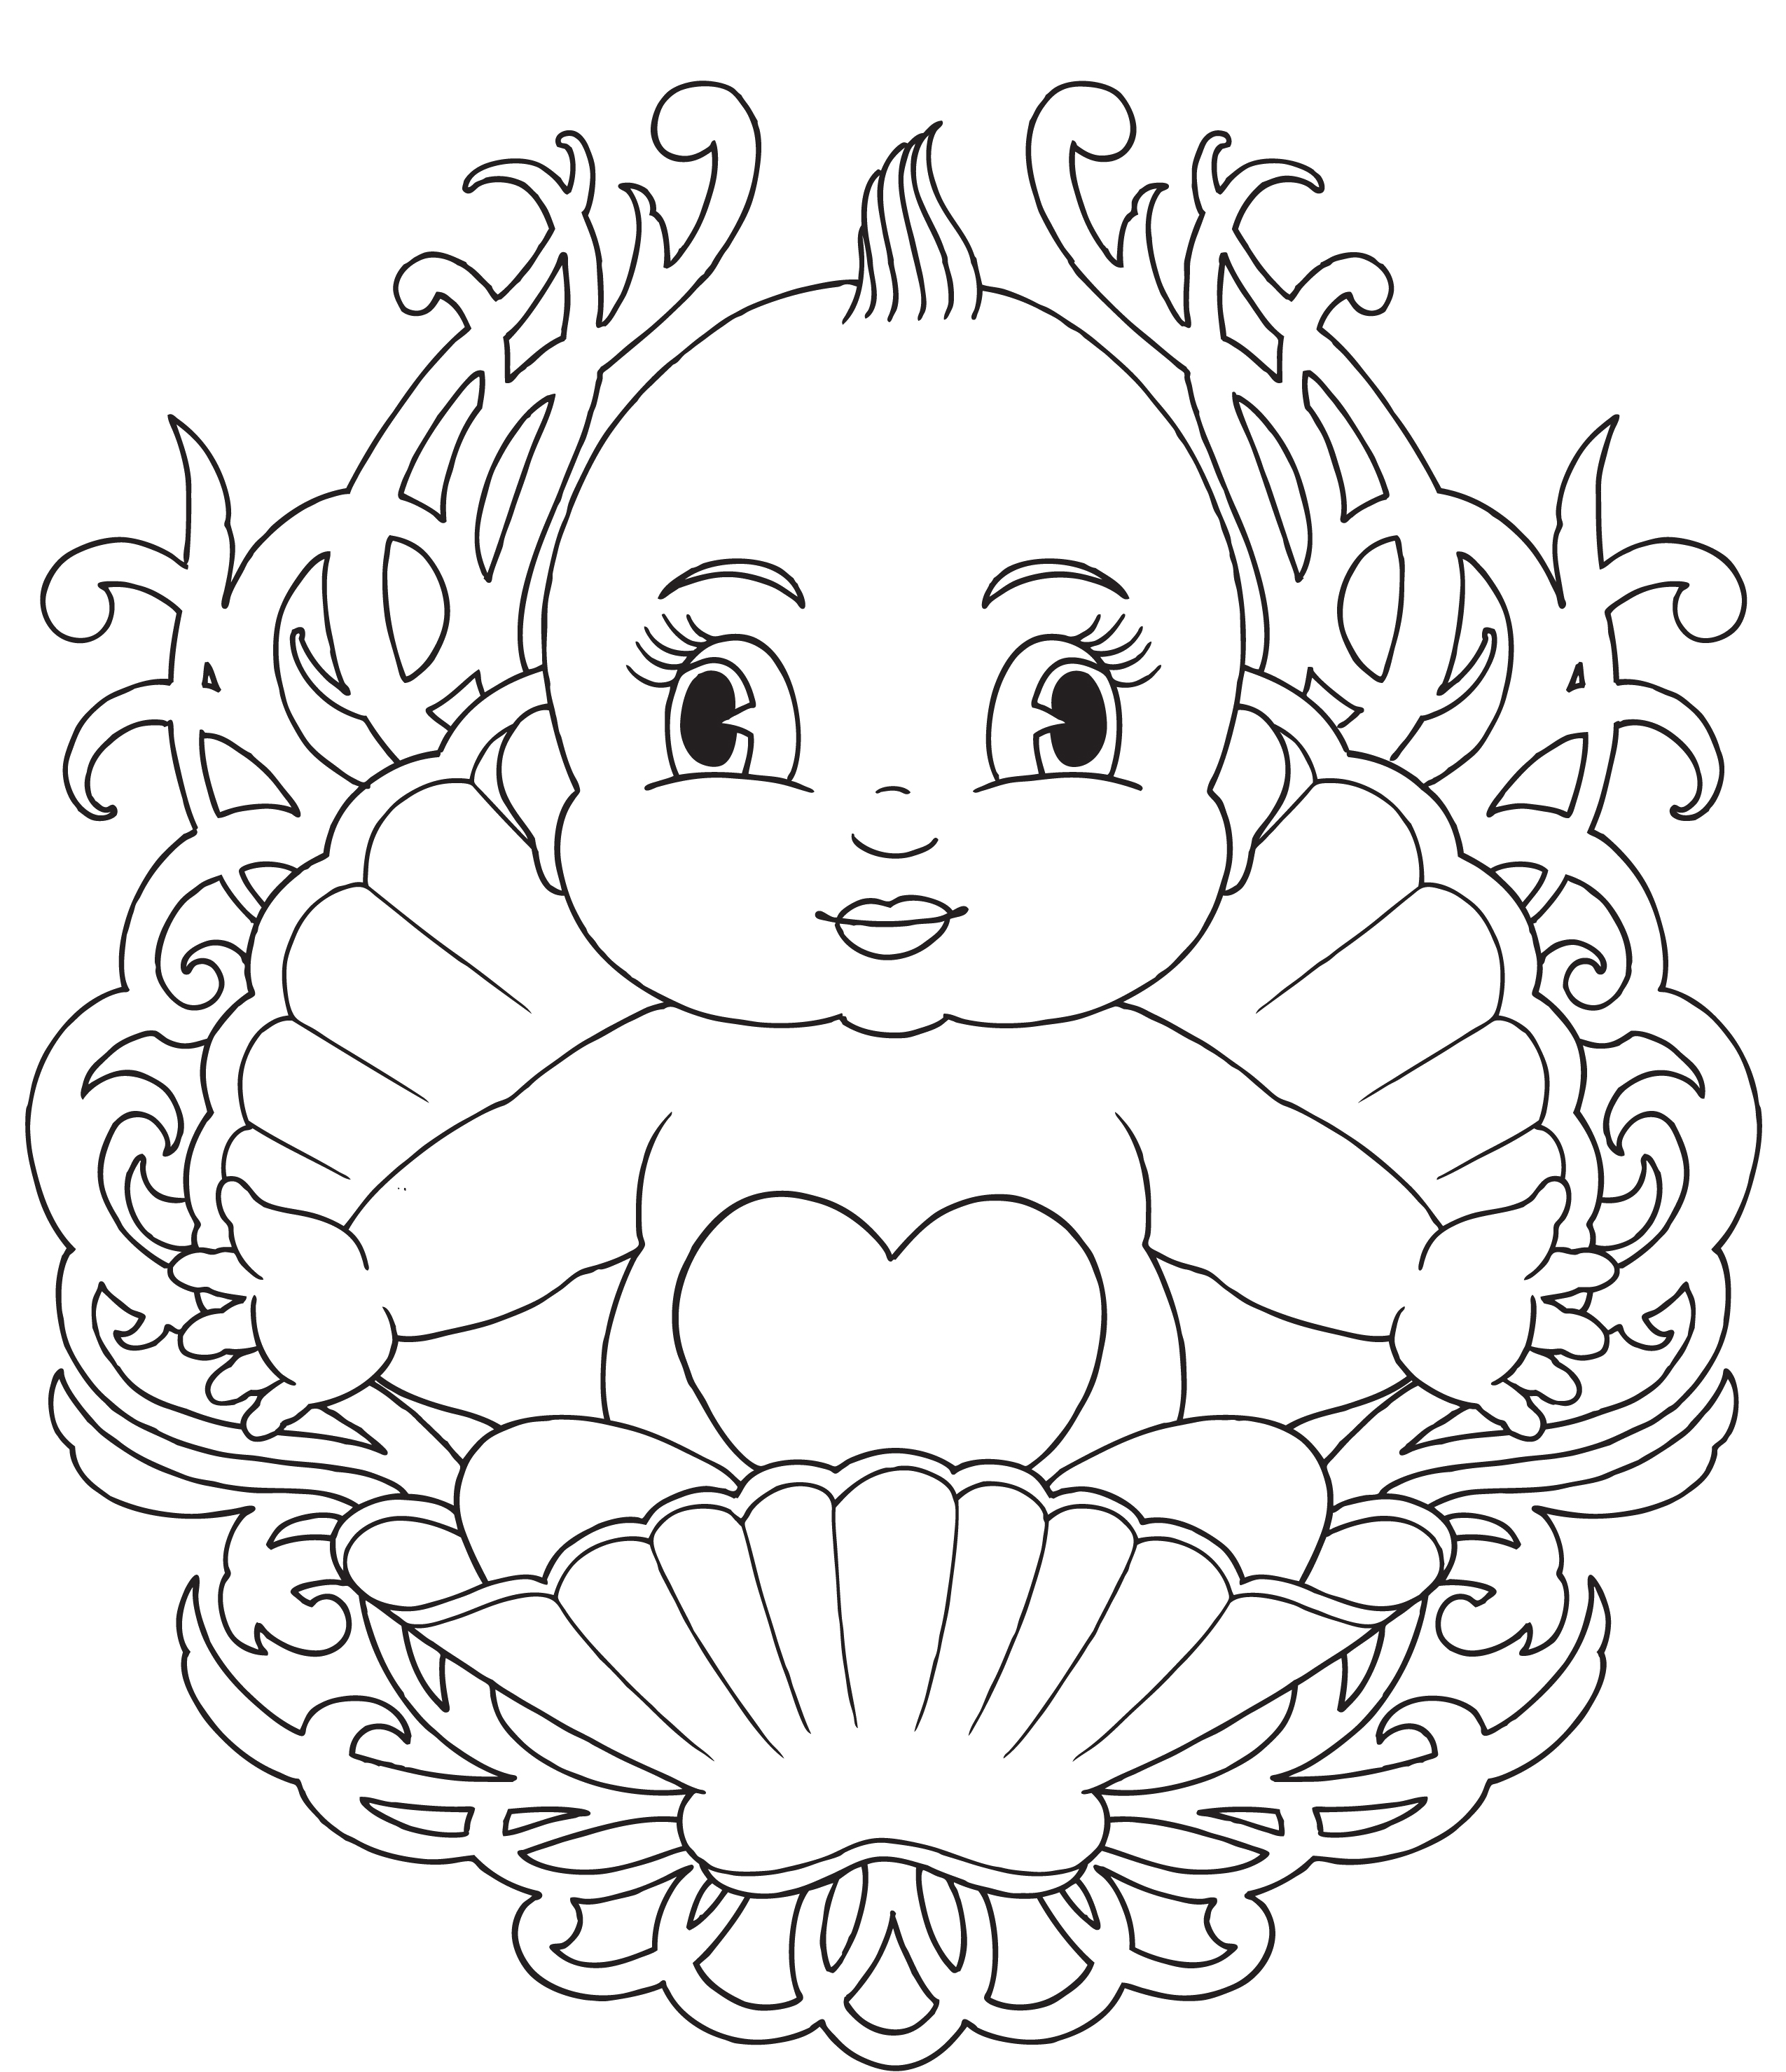 coloring pages of babies - Babies Coloring Pages